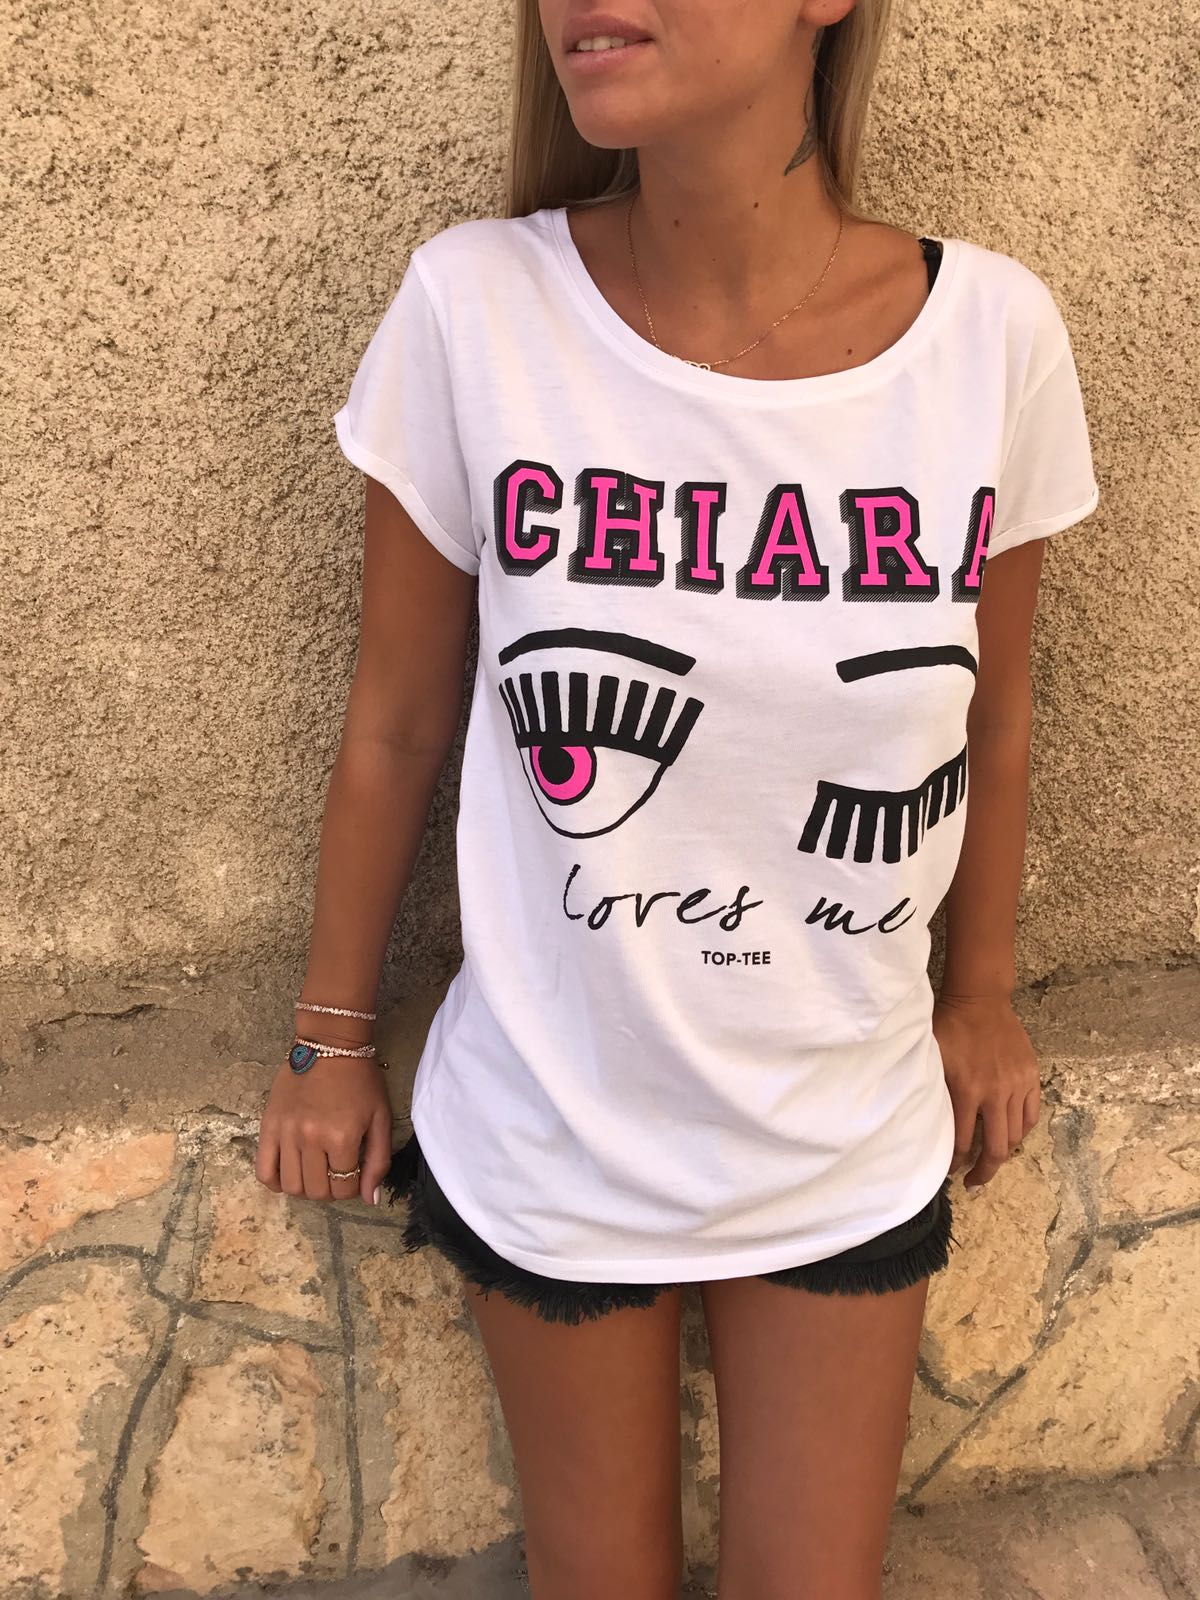 top-tee chiara